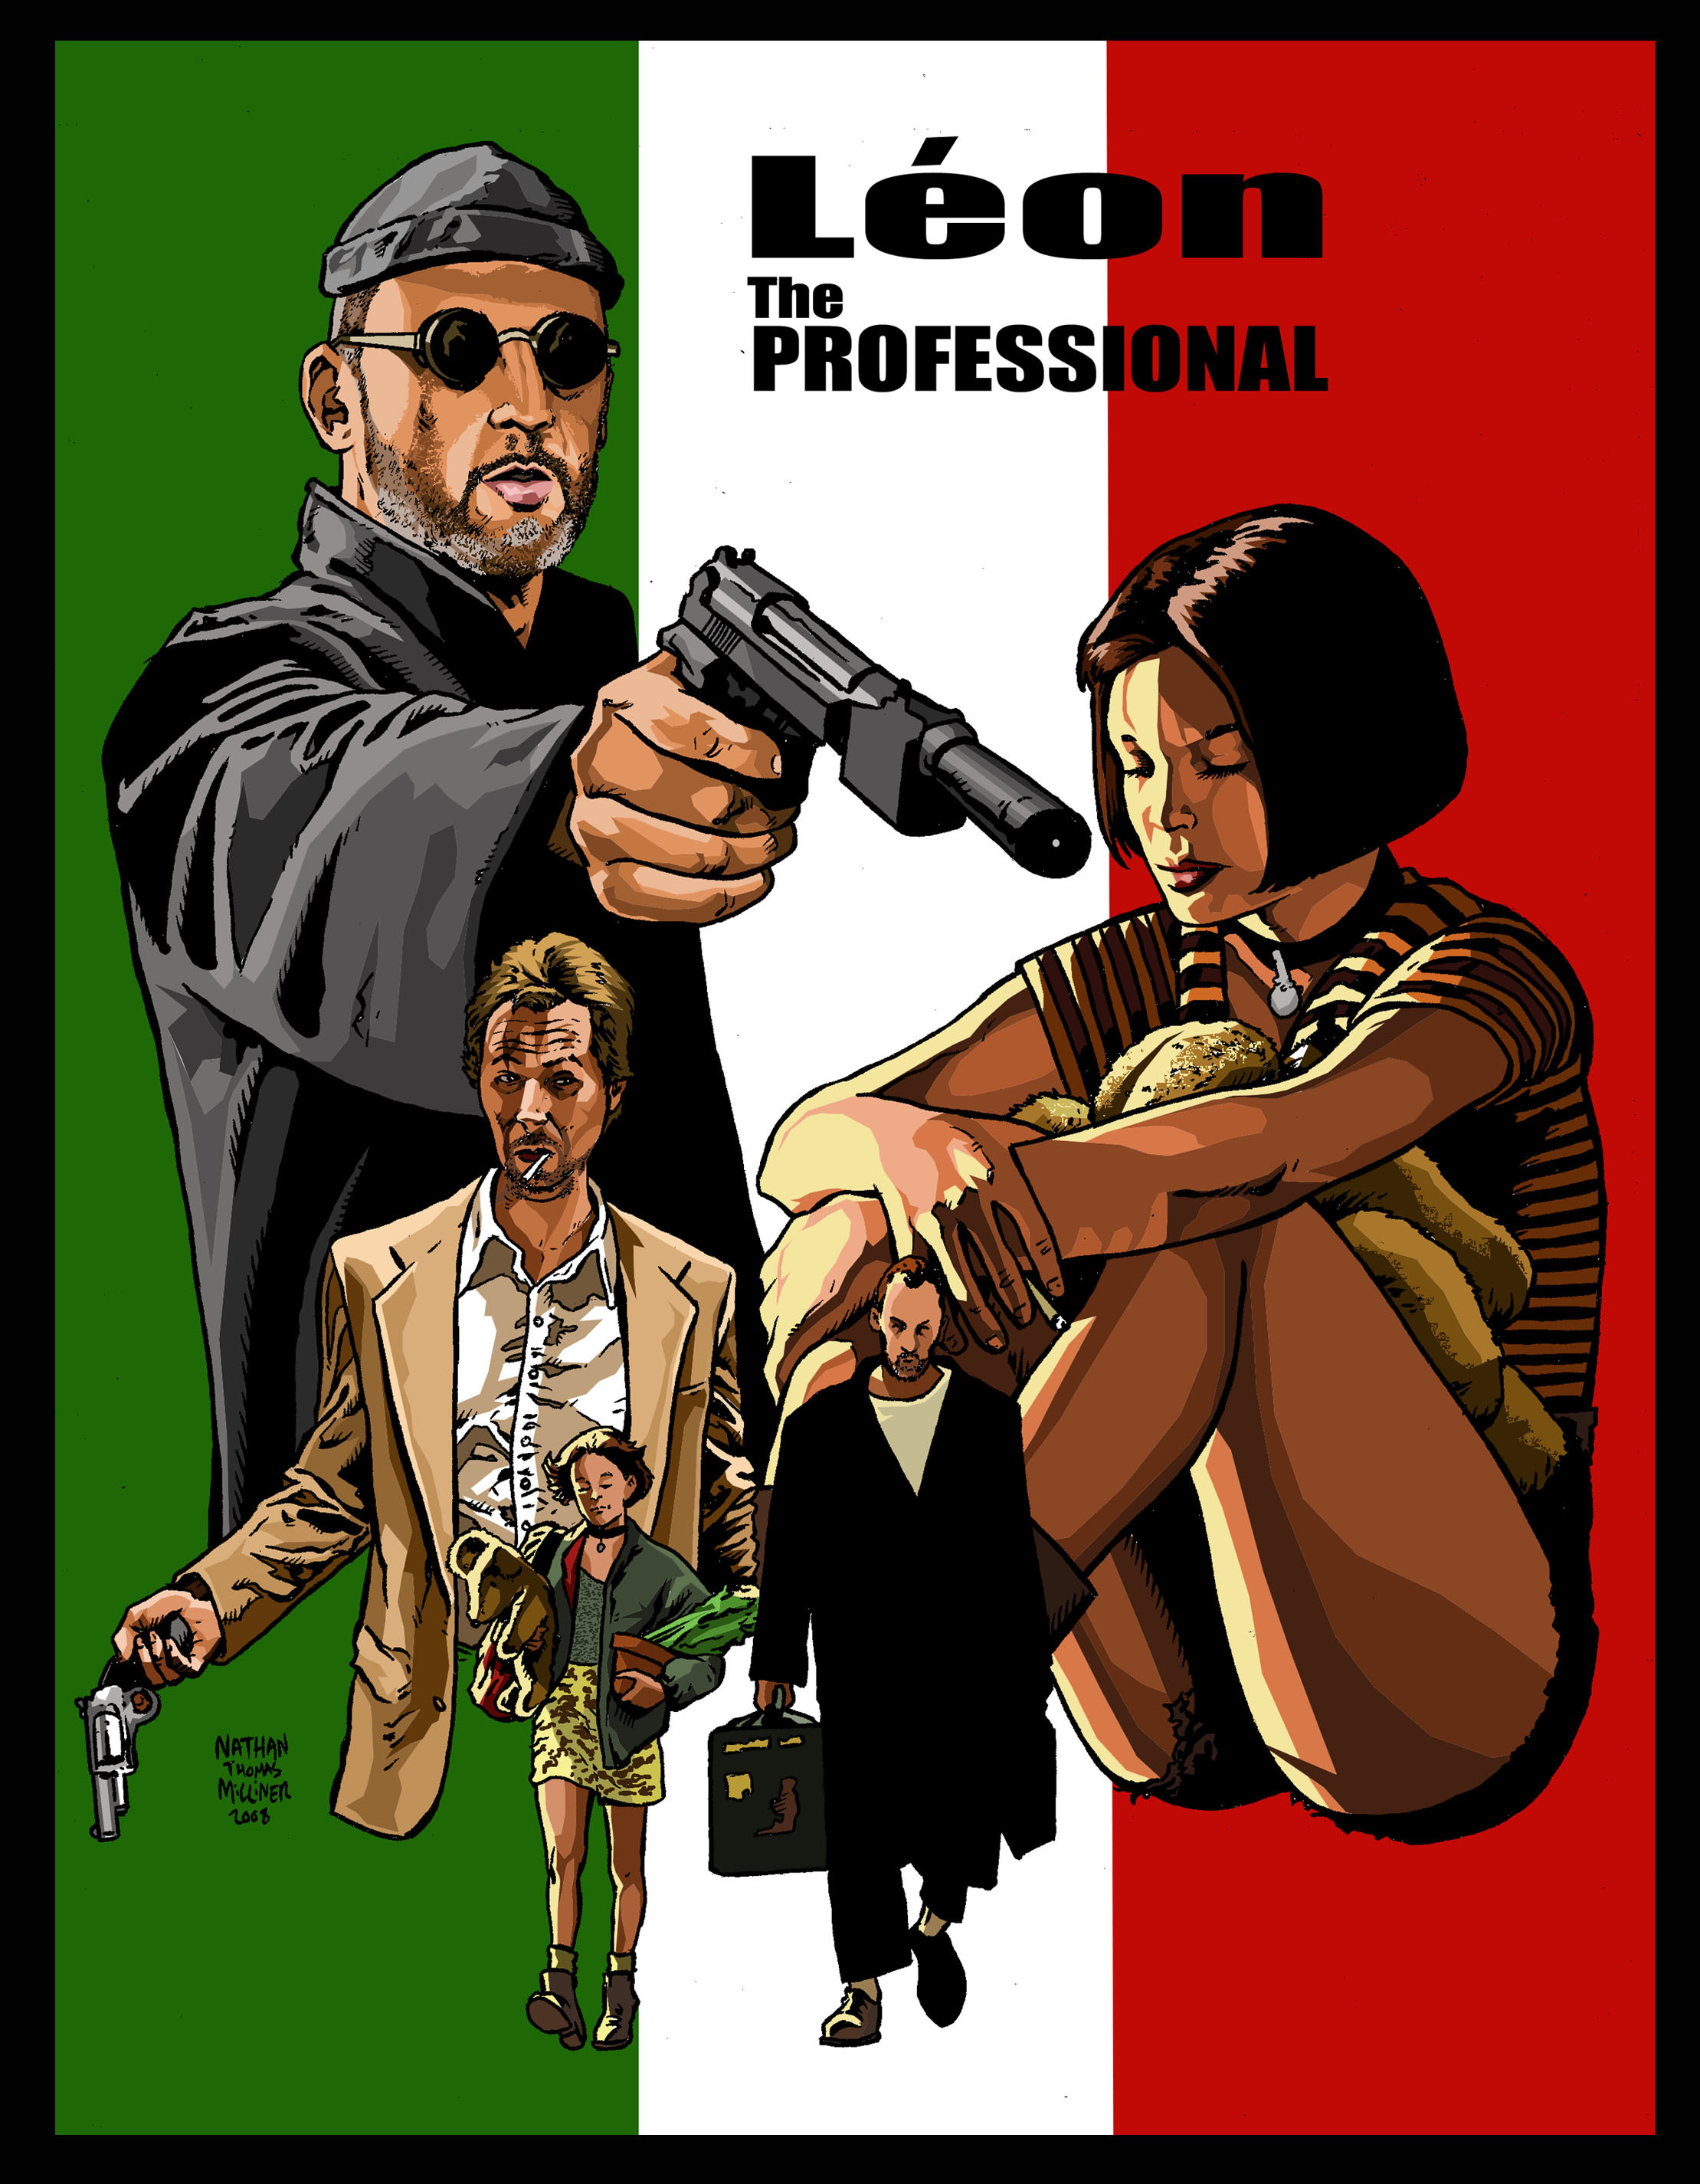 Leon The Professional jean HD Wallpaper